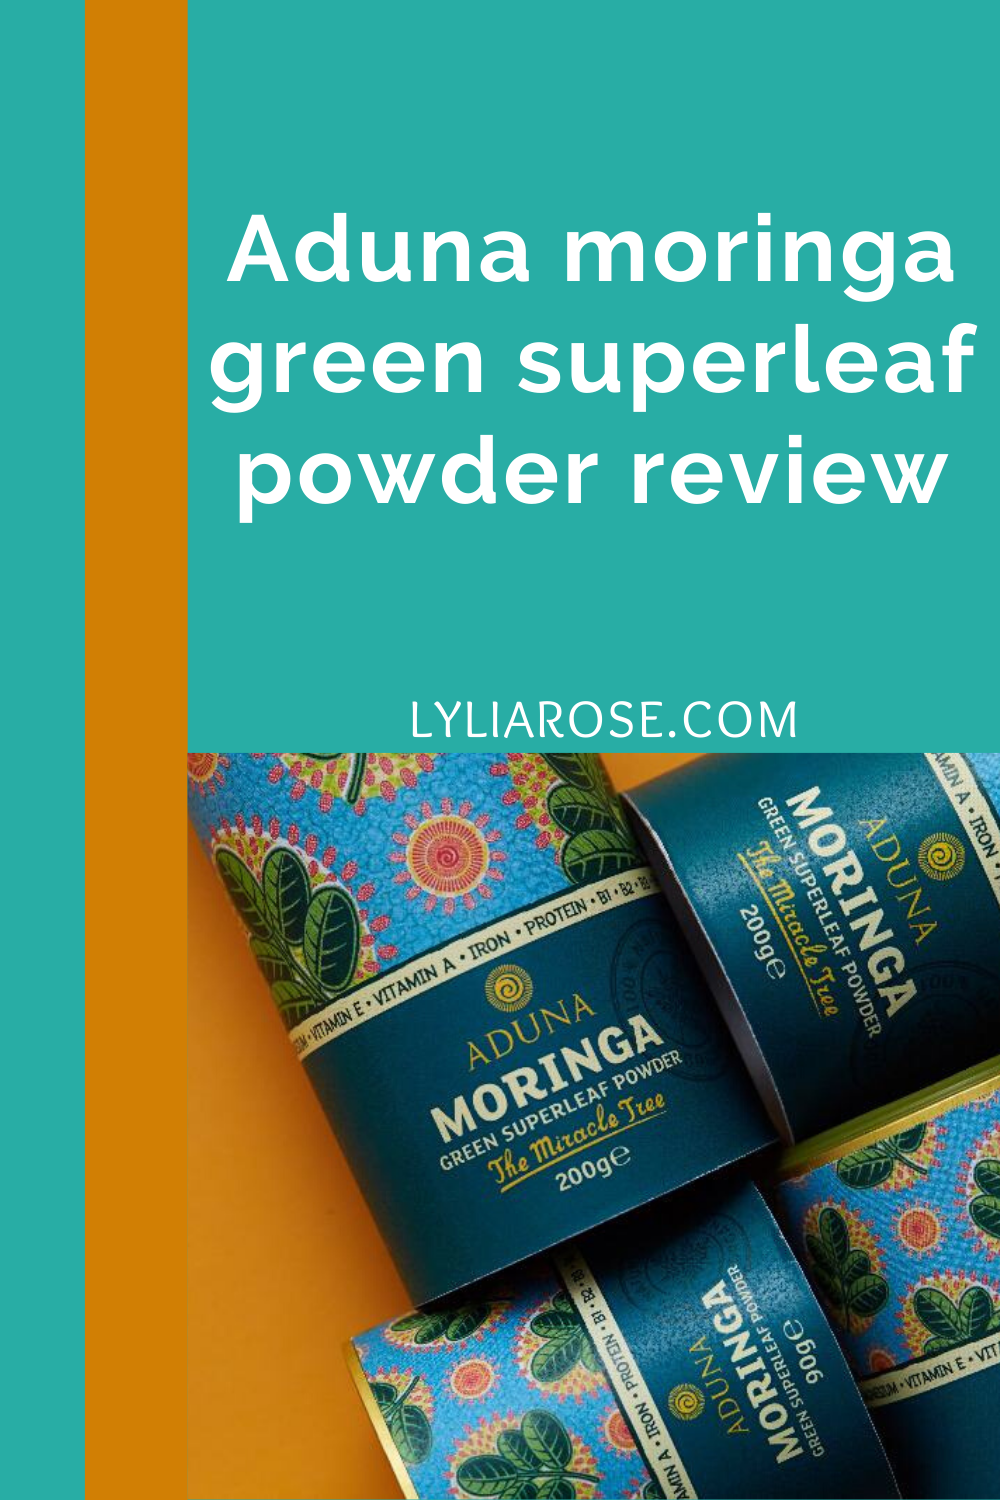 Aduna moringa green superleaf powder review